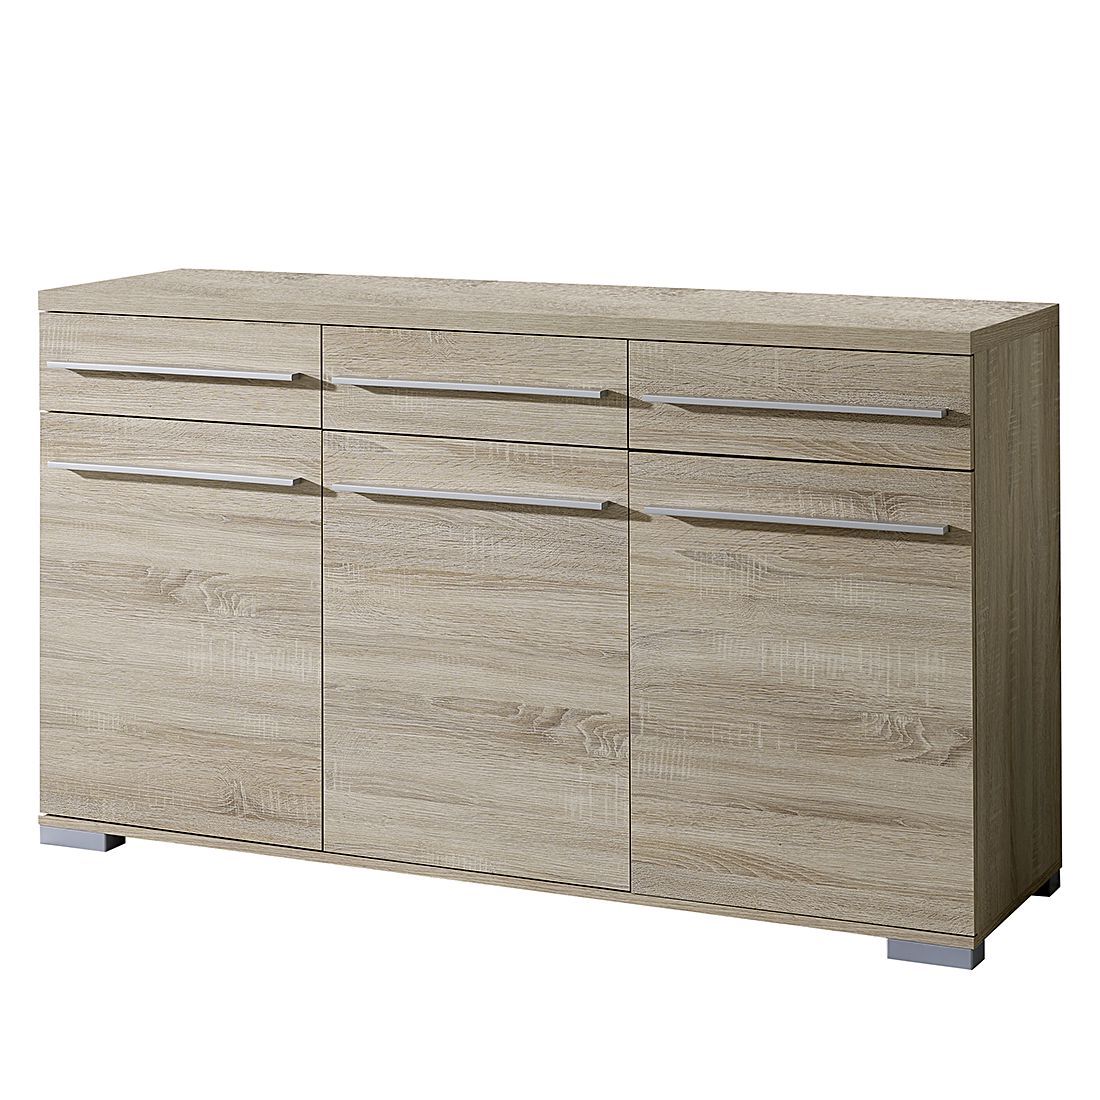 sideboard tournai eiche s gerau dekor. Black Bedroom Furniture Sets. Home Design Ideas